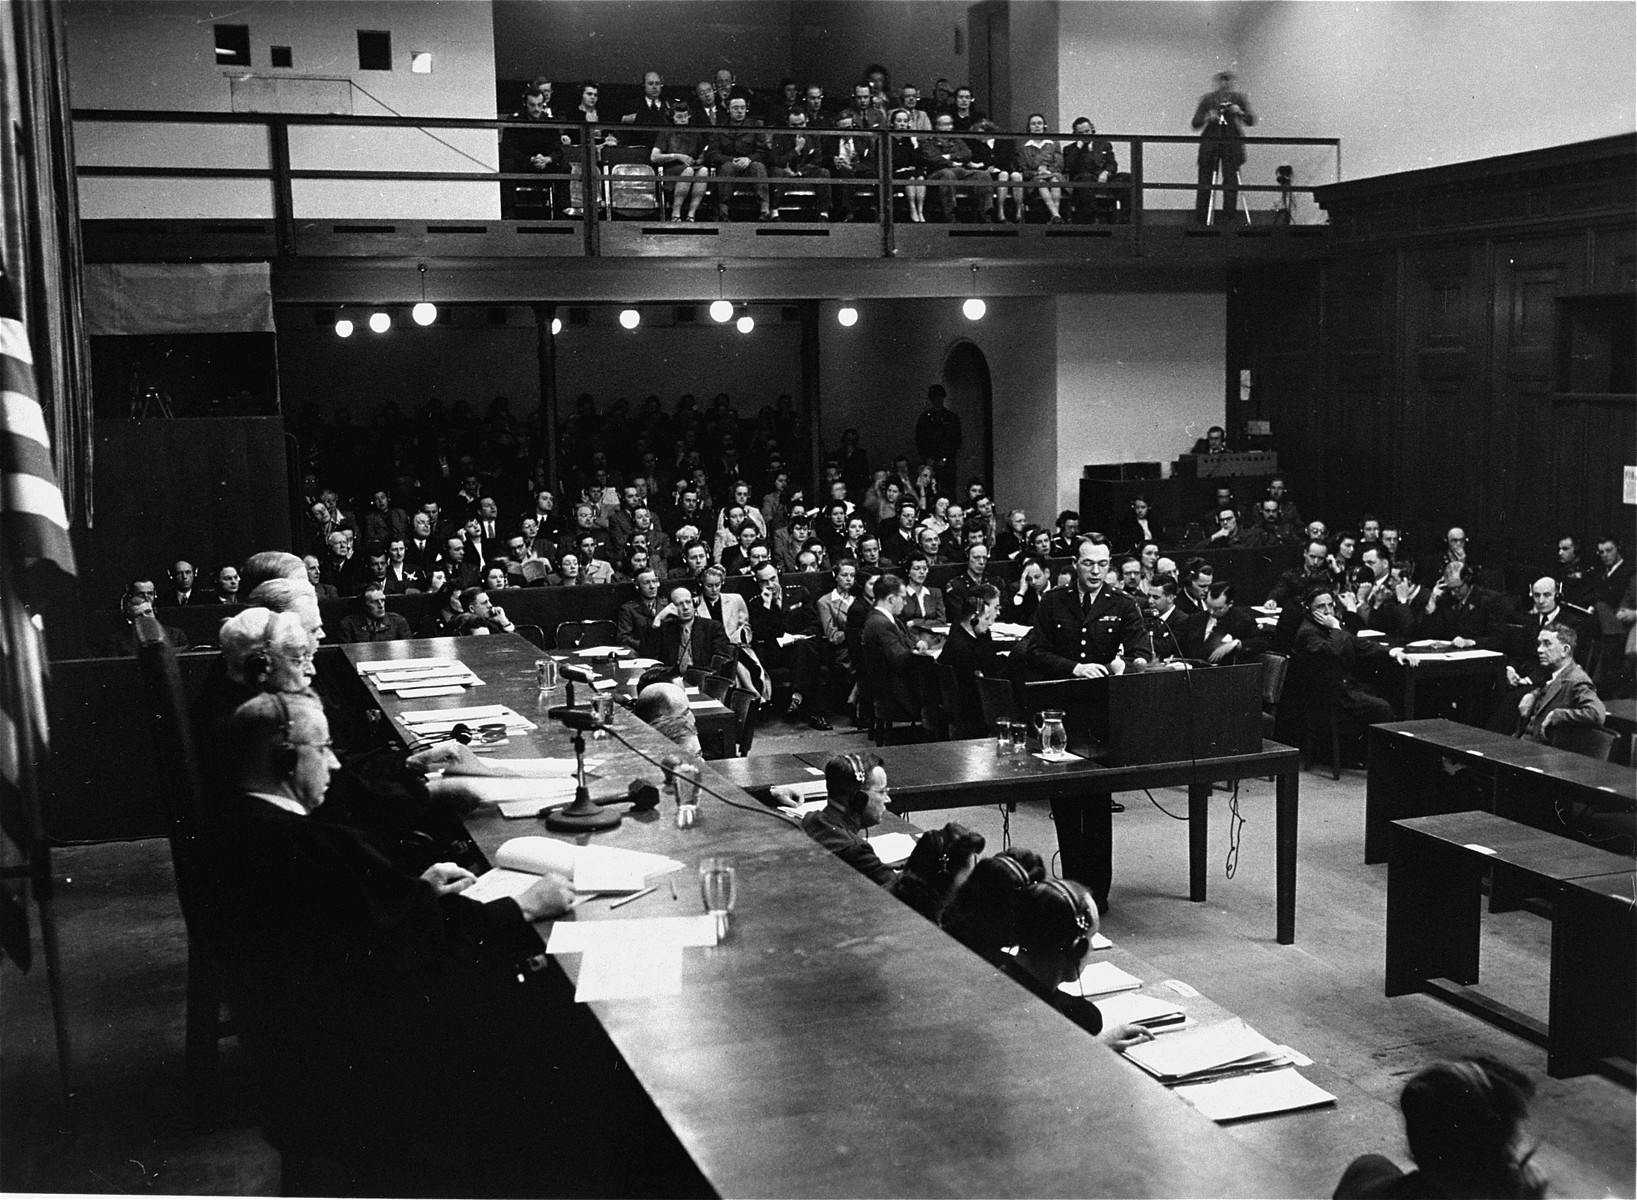 The courtroom in the Palace of Justice during the Flick Trial.    US Chief of Counsel Brigadier General Telford Taylor is shown at the podium in the center, and the Tribunal is on the left.  The spectators gallery is at the back.